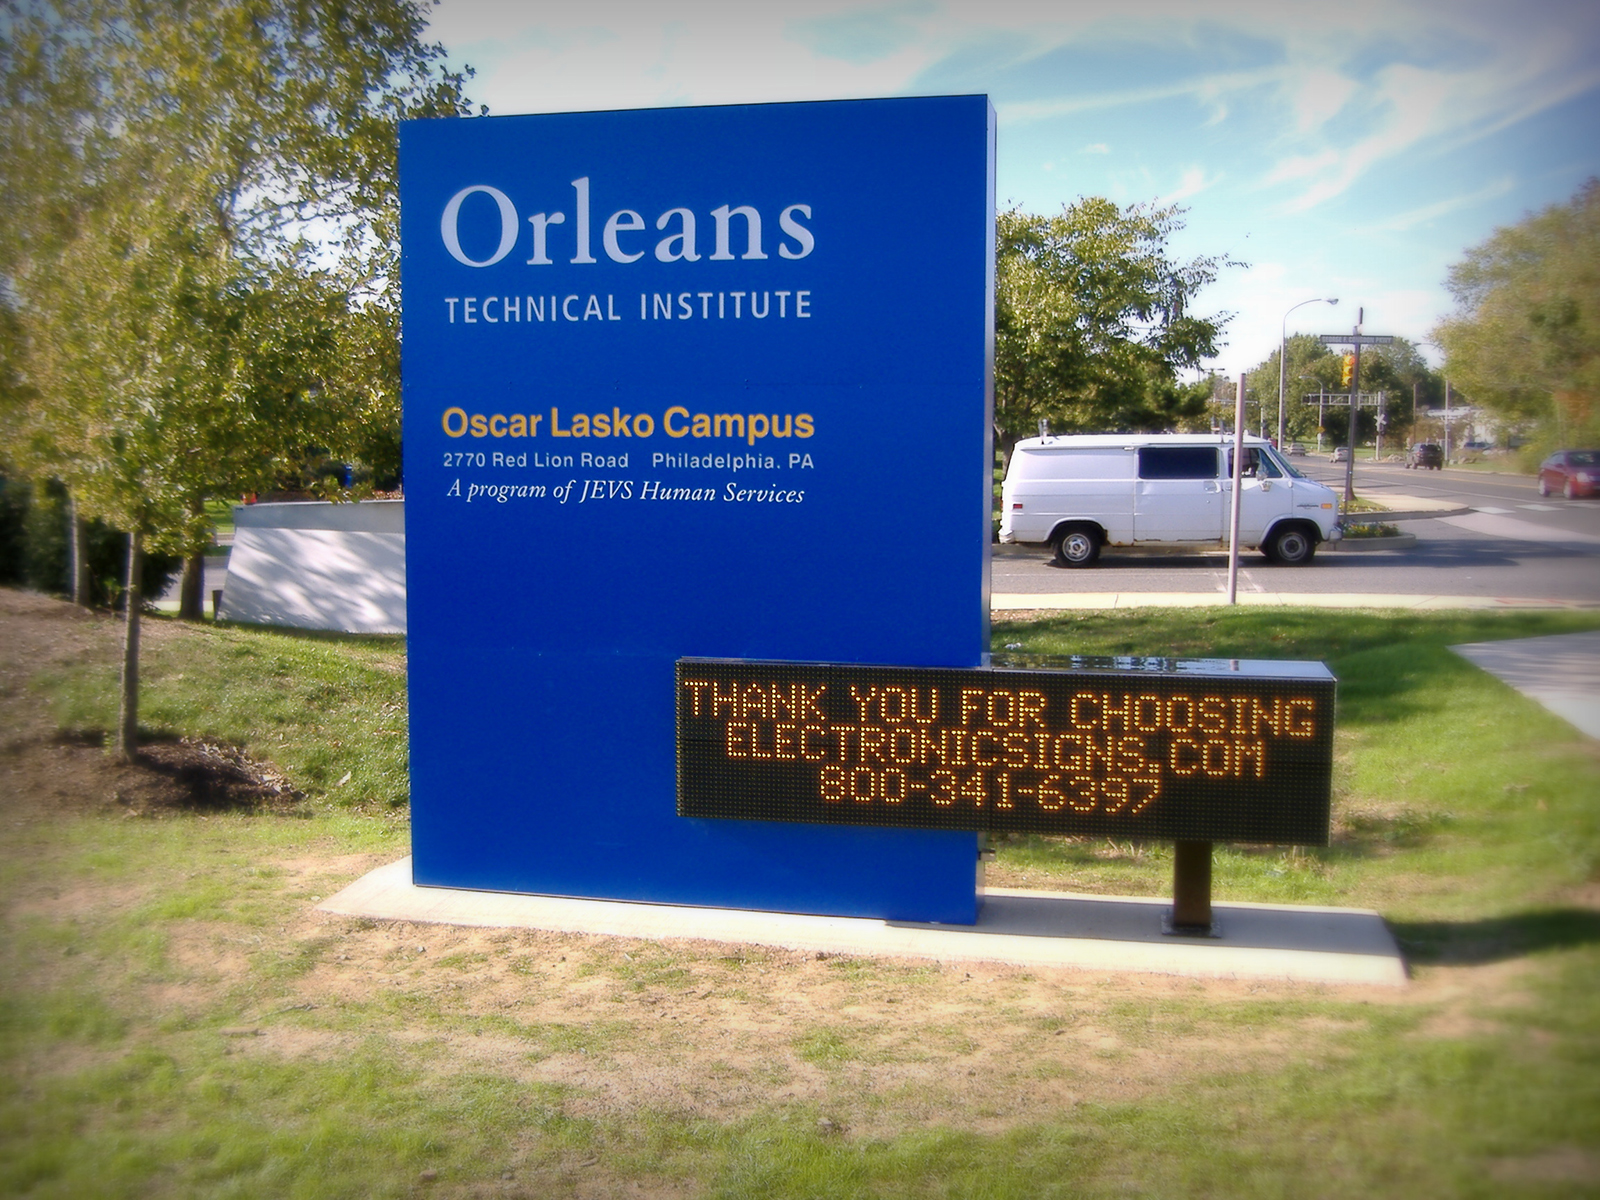 Orleans Technical Institute